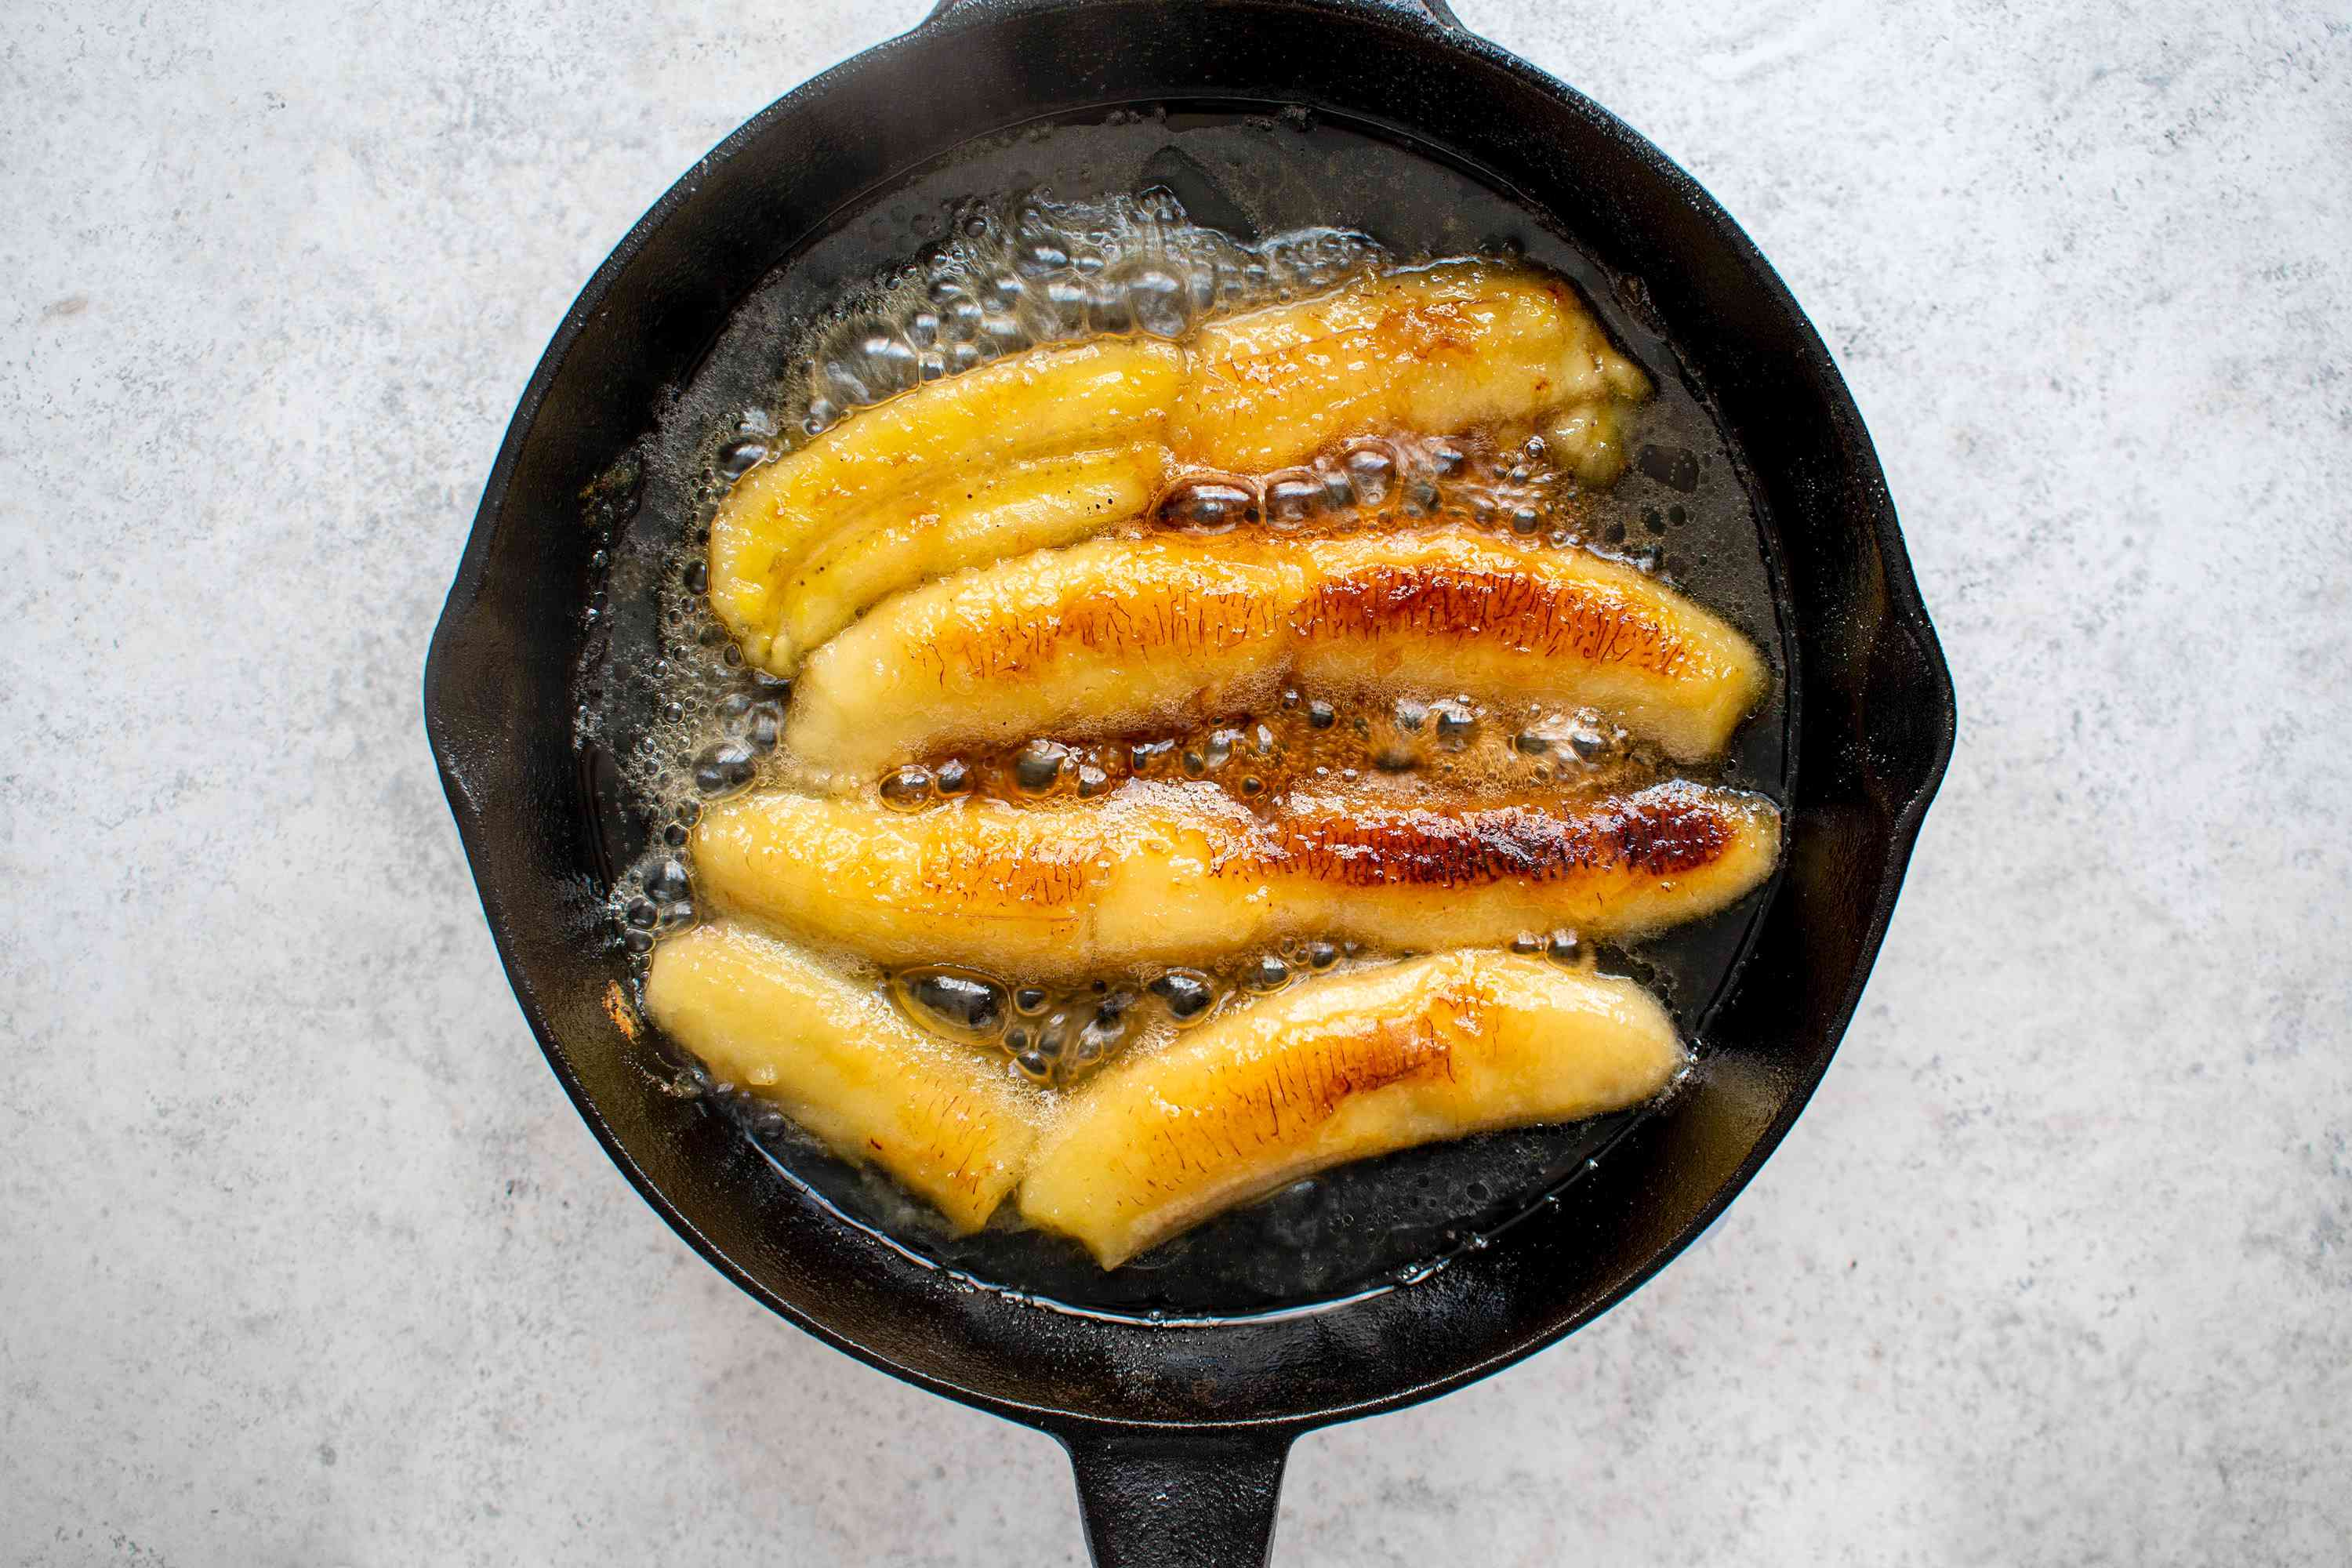 cook the bananas in the pan with the sugar and rum